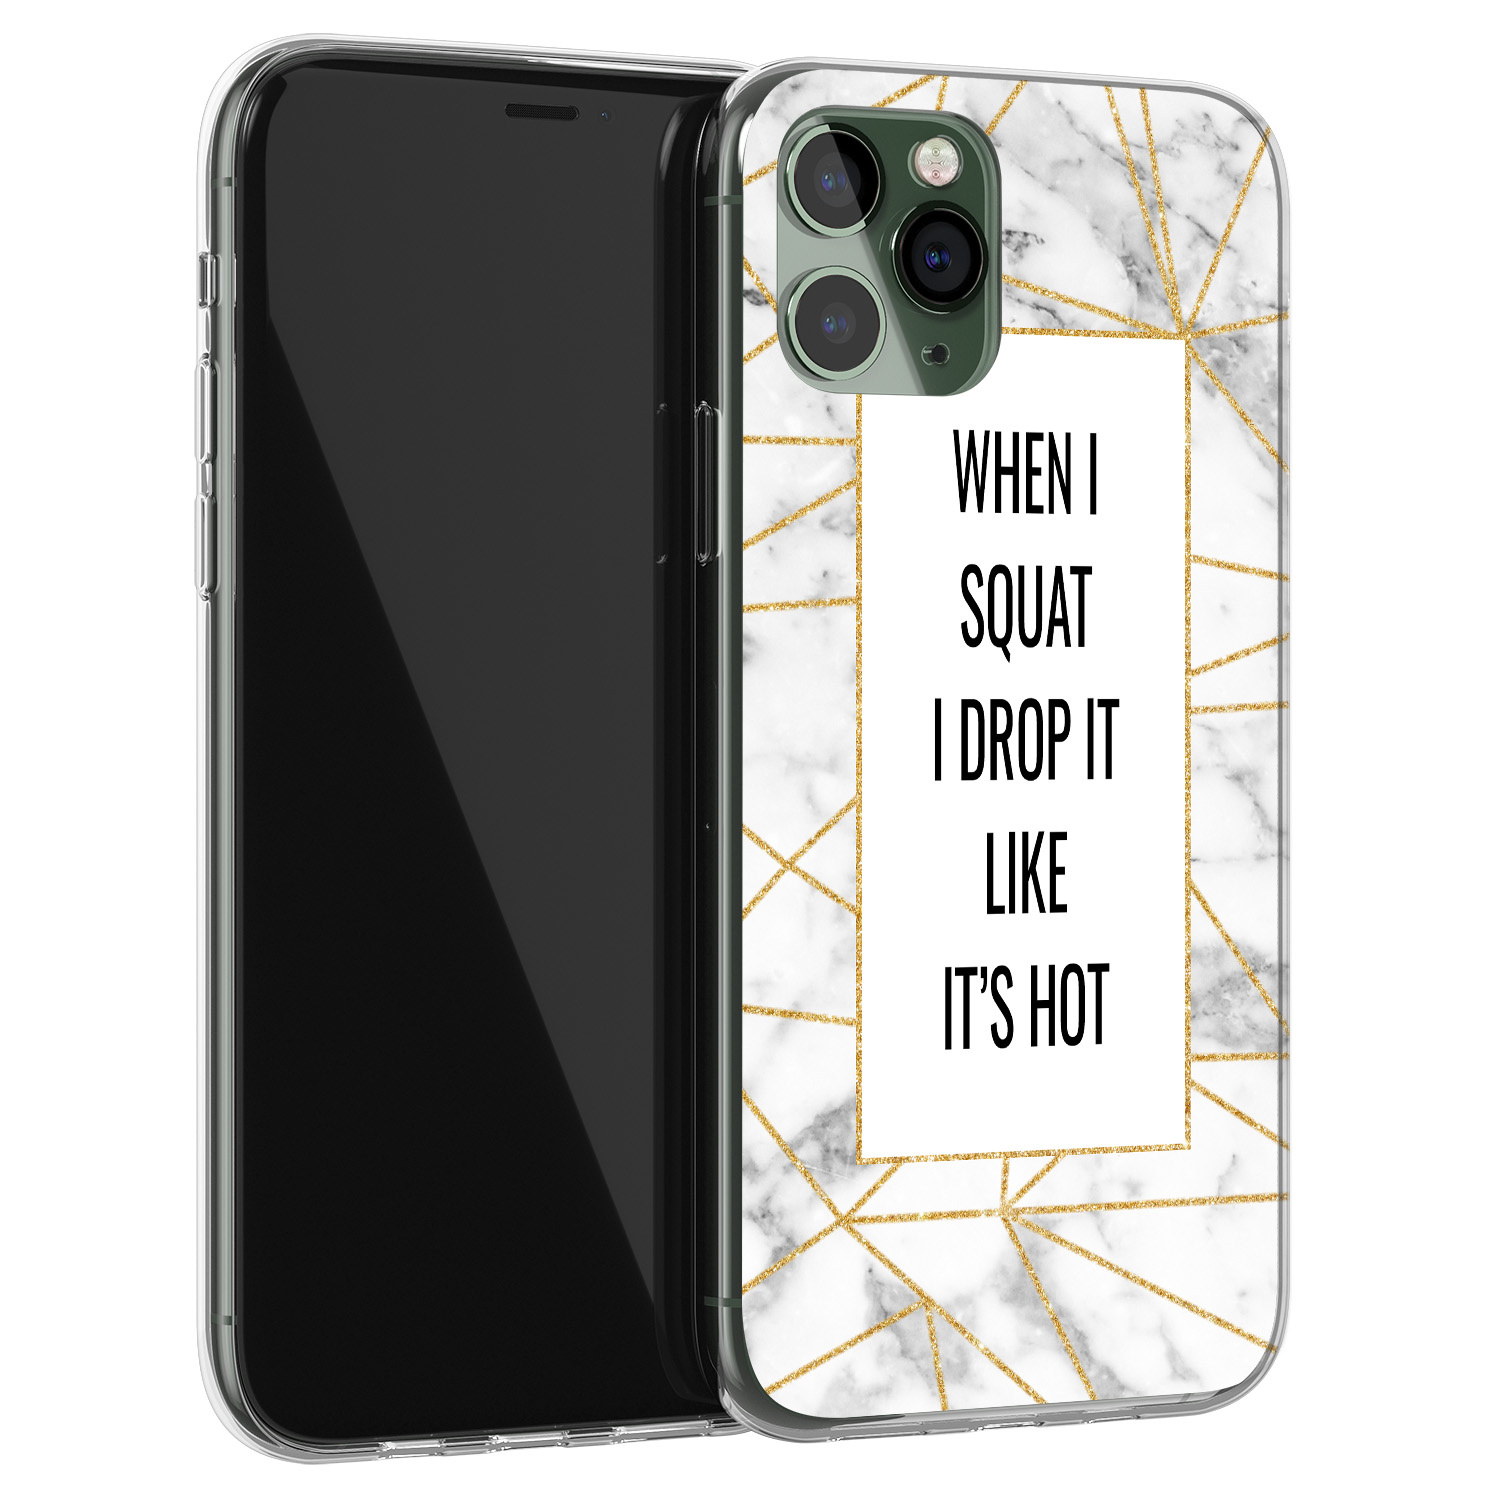 iPhone 11 Pro Max siliconen hoesje - Dropping squats